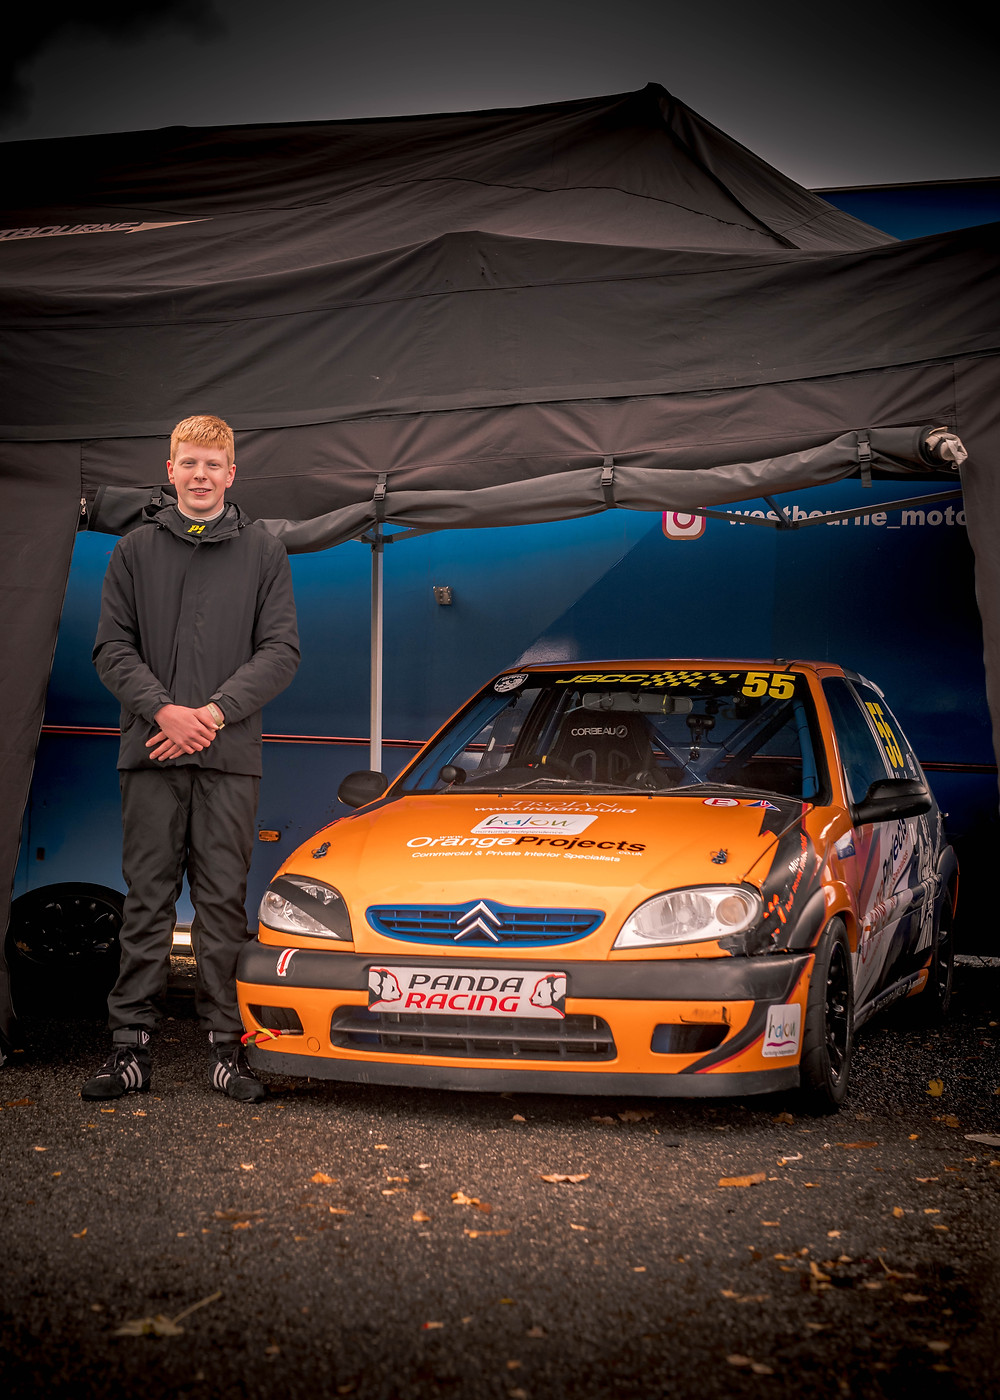 Charlie Hand with Citroen Saxo | Oulton Park